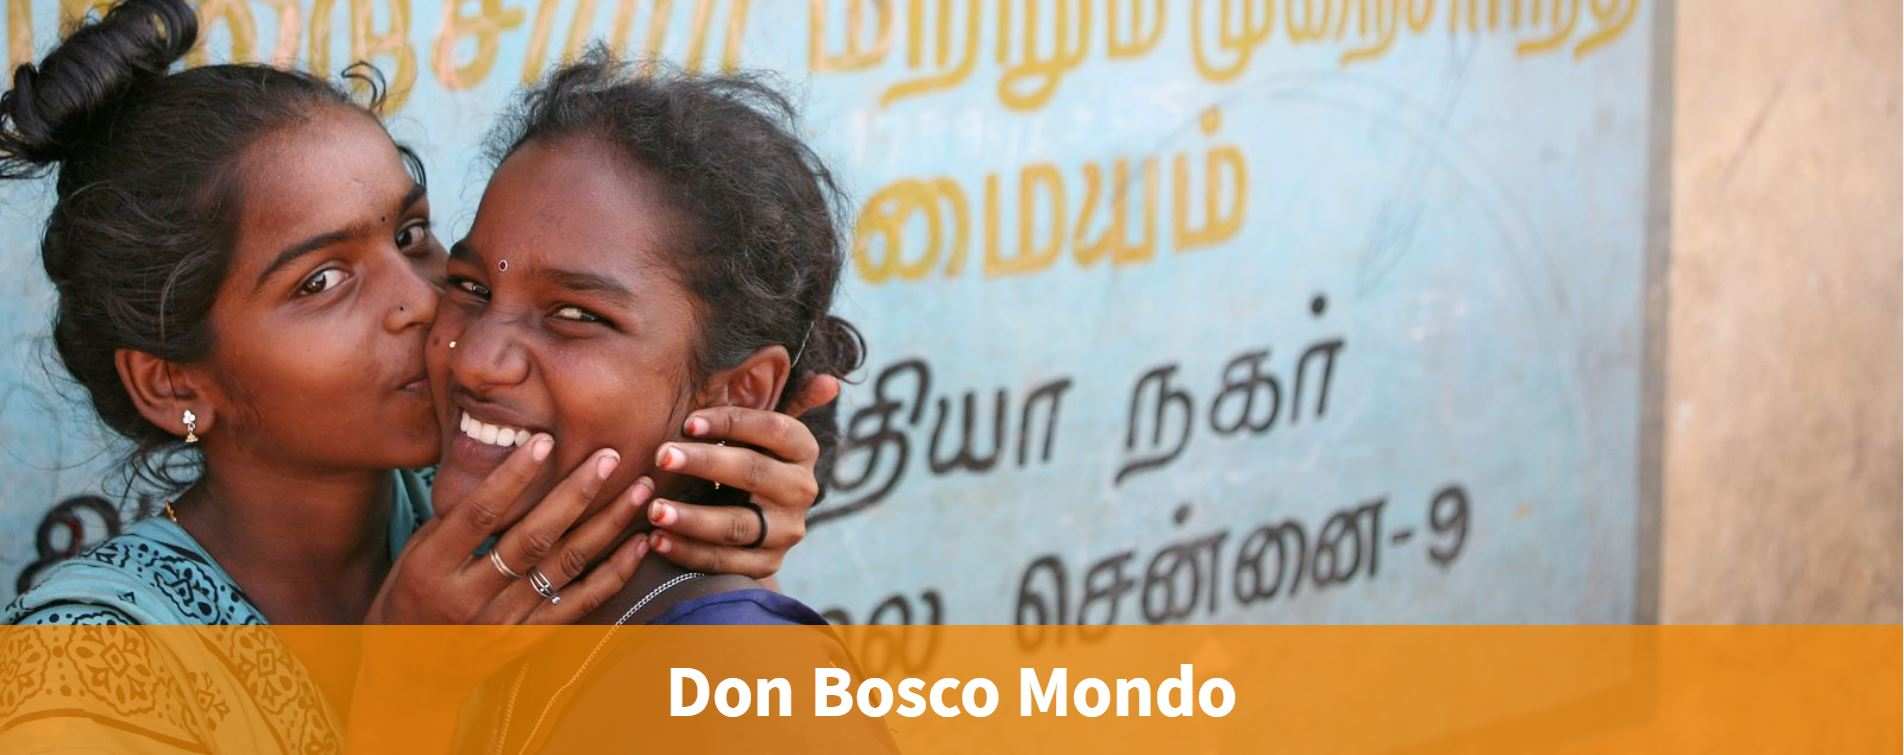 Don Bosco Mondo e.V. Cover Image